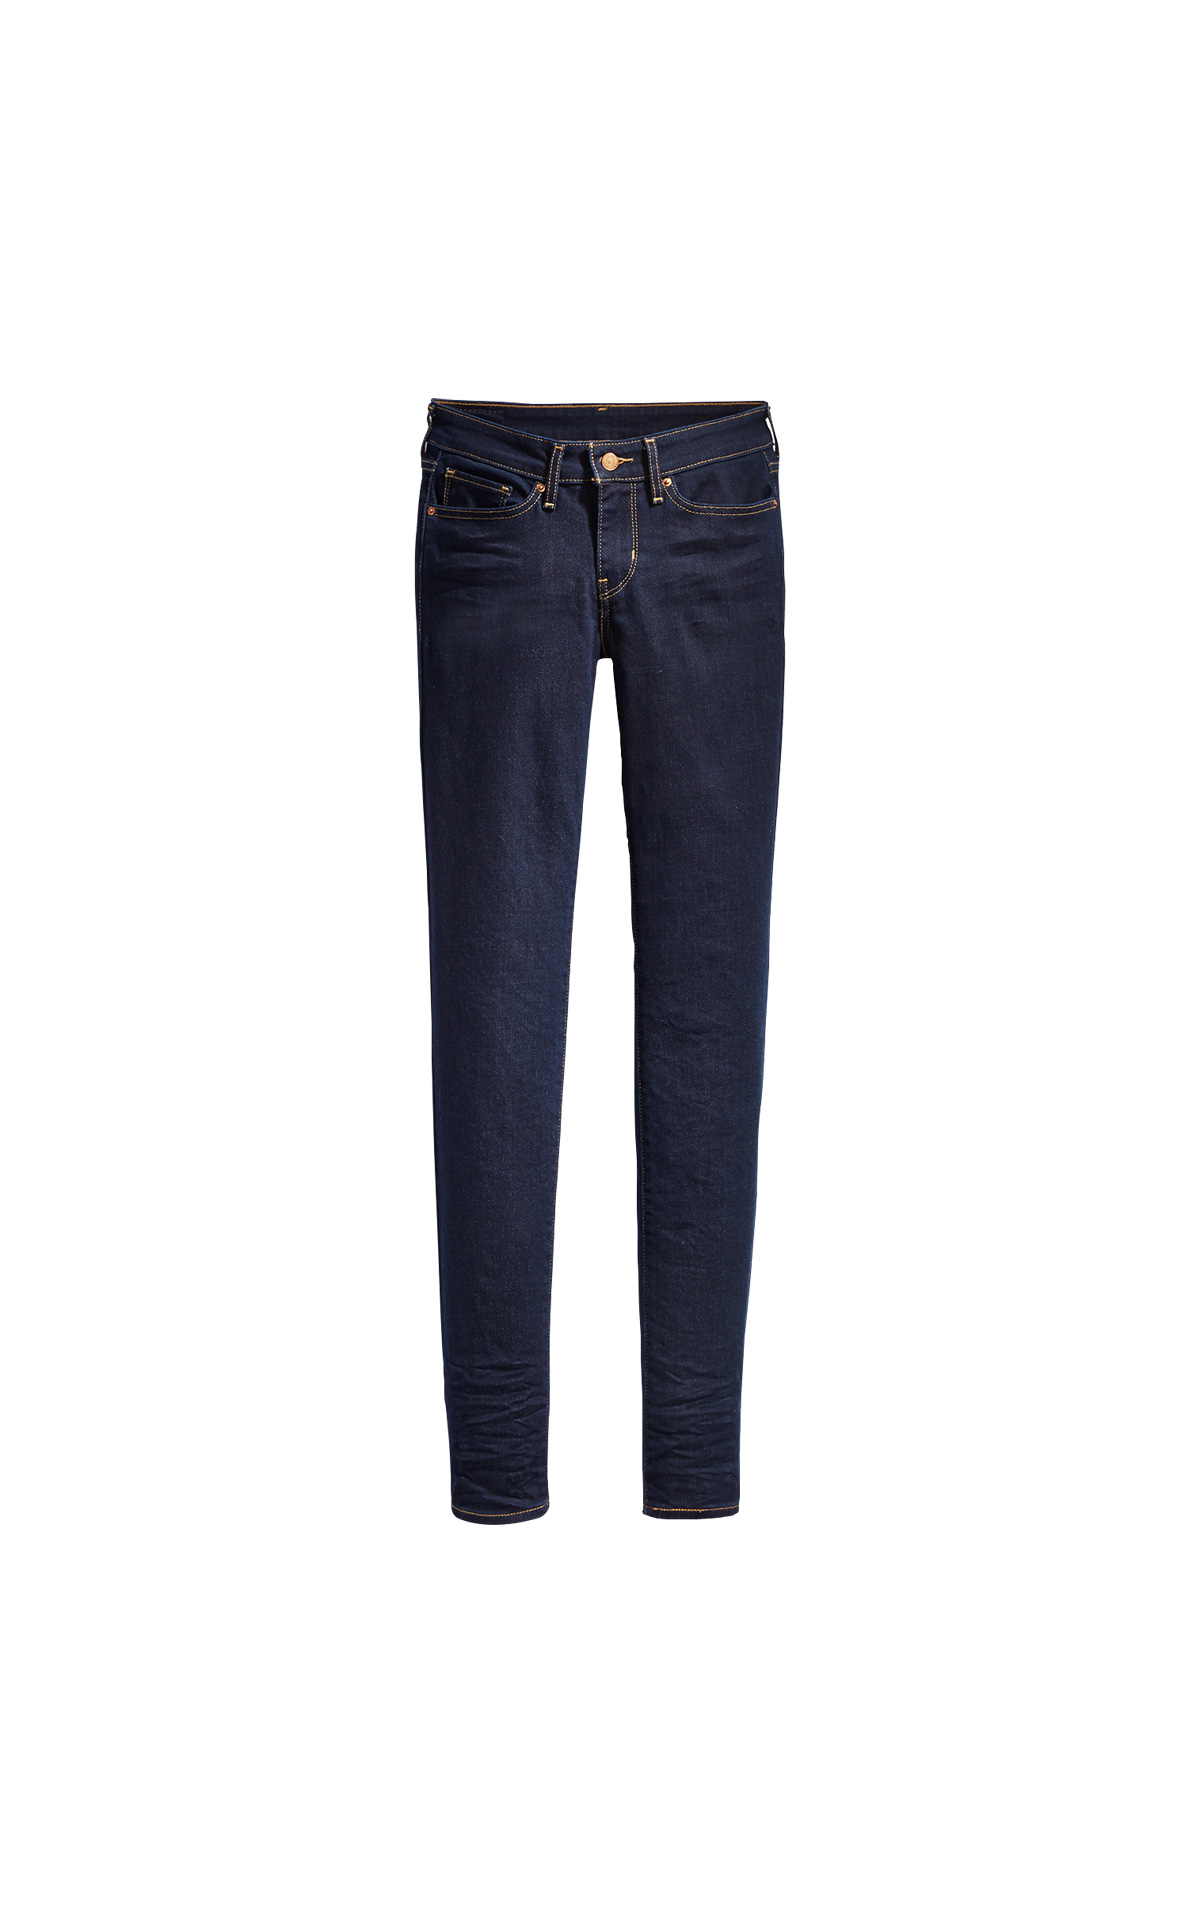 711 dark skinny jeans for woman Levi's